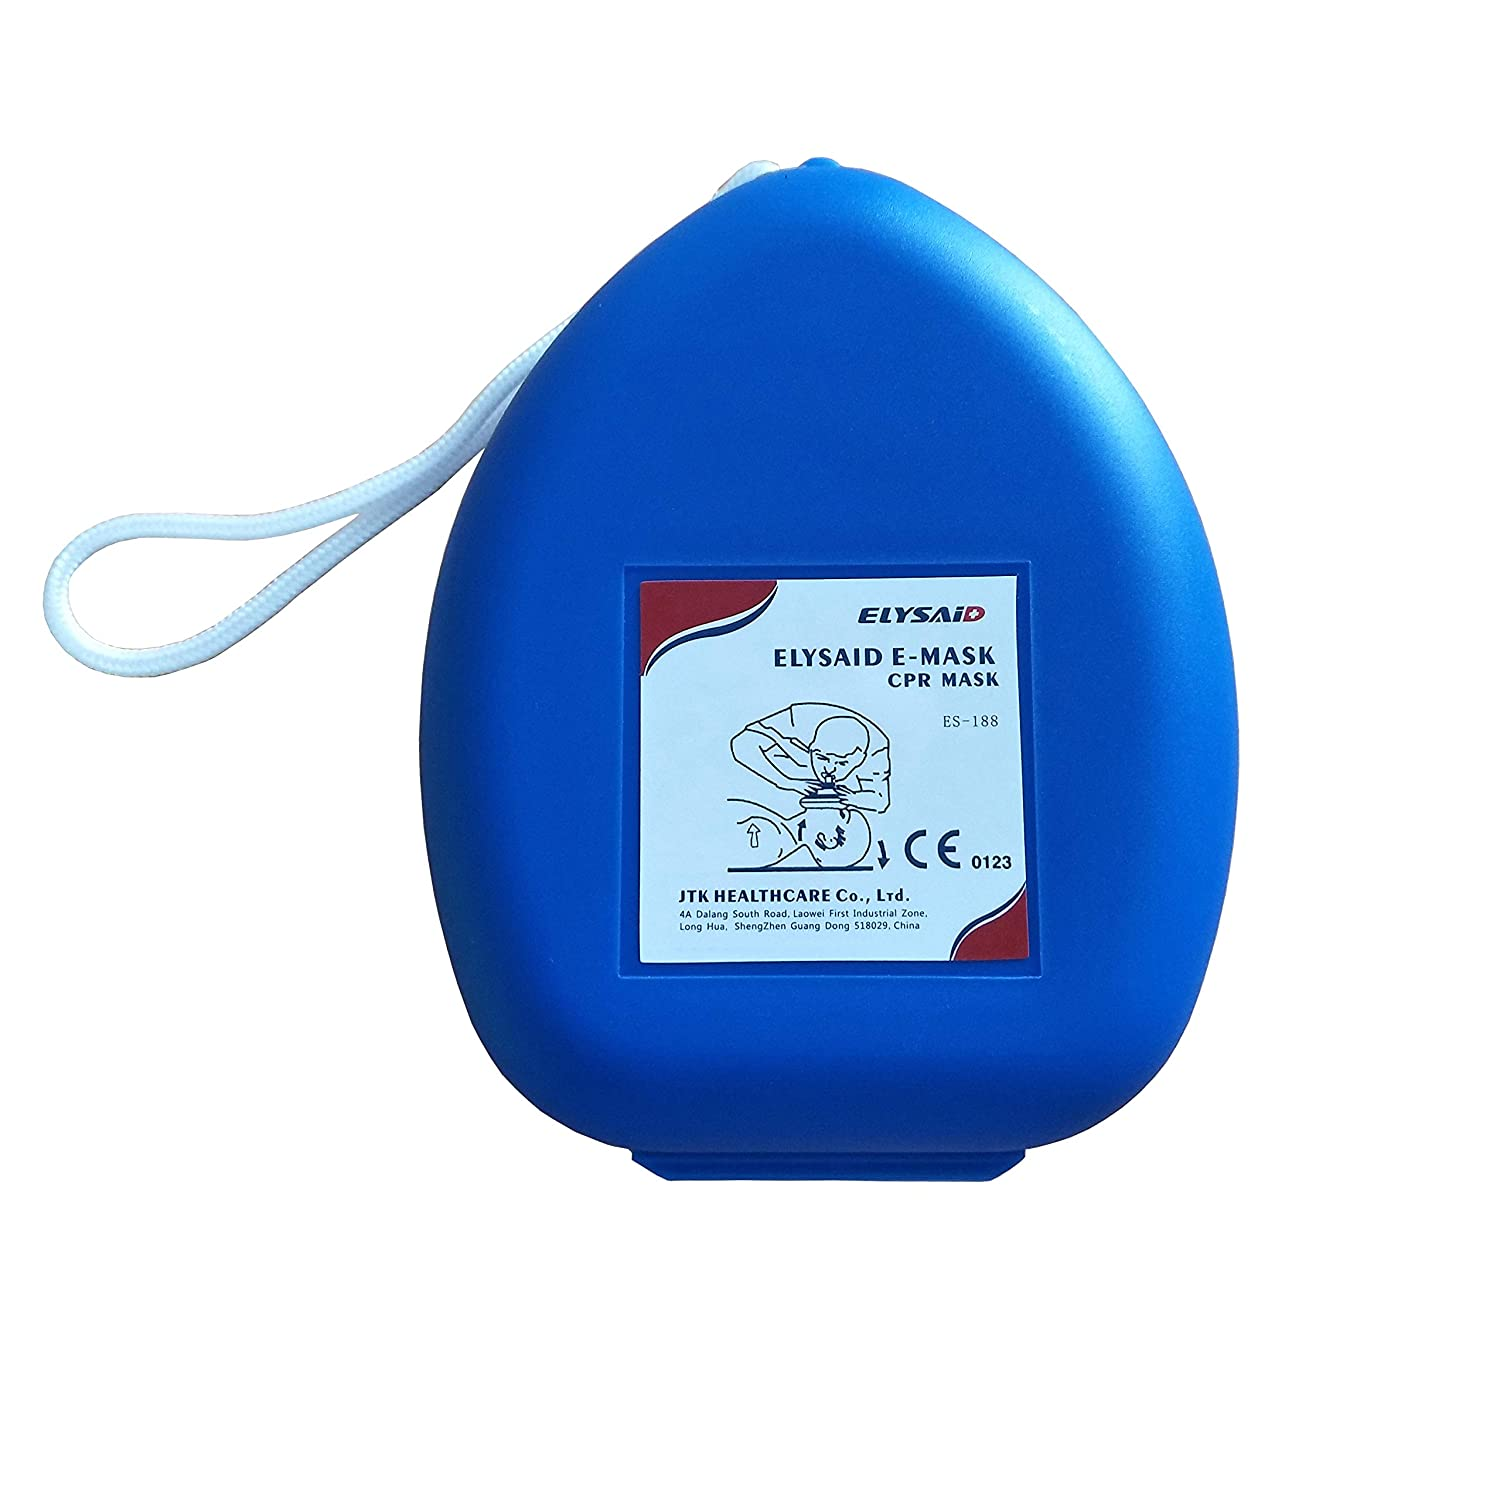 1pcs First Aid CPR Rescue Adult and Child Face Shield Mask Face Shield Oxygen Inlet In Box